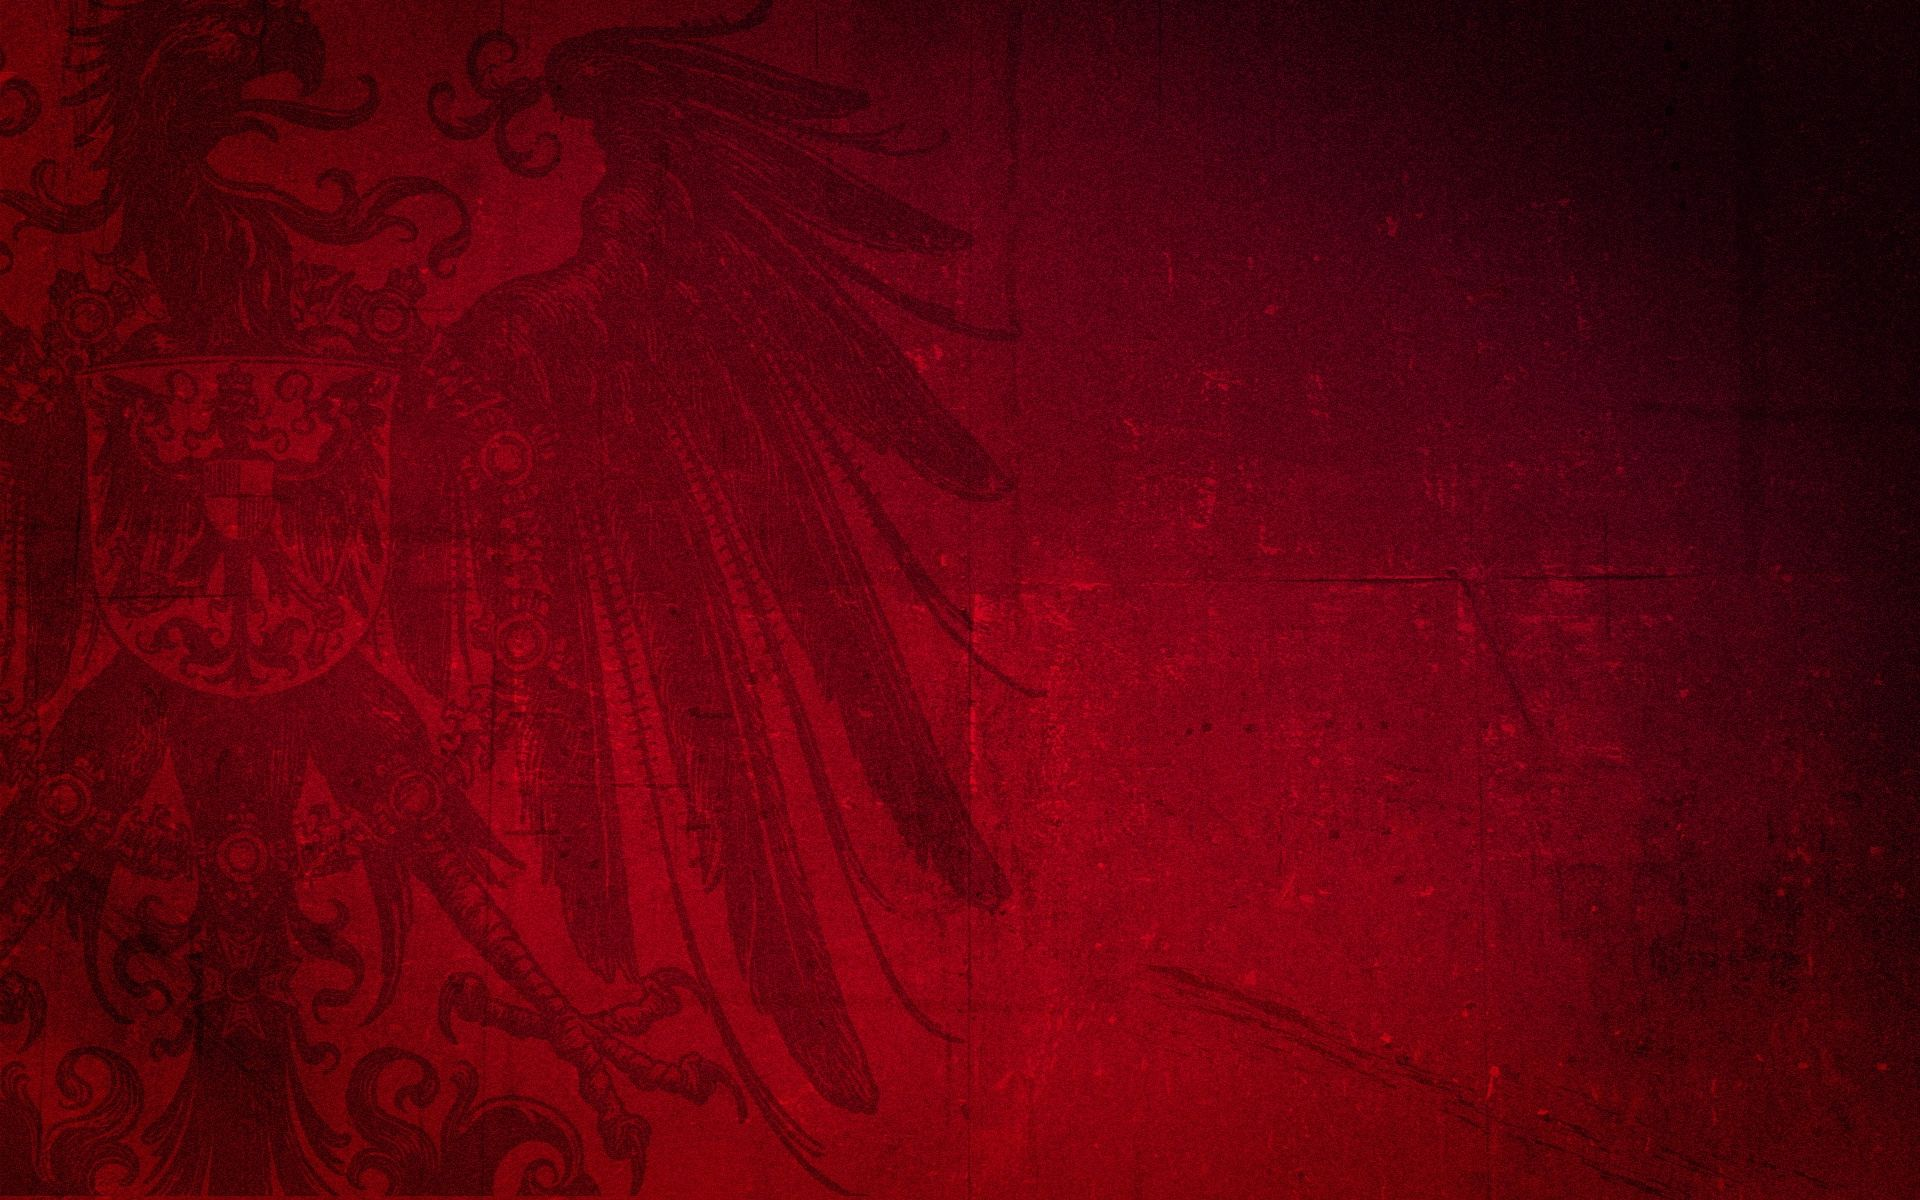 Dark Red Background with Eagle Wallpaper and Stock Photo 1920x1200